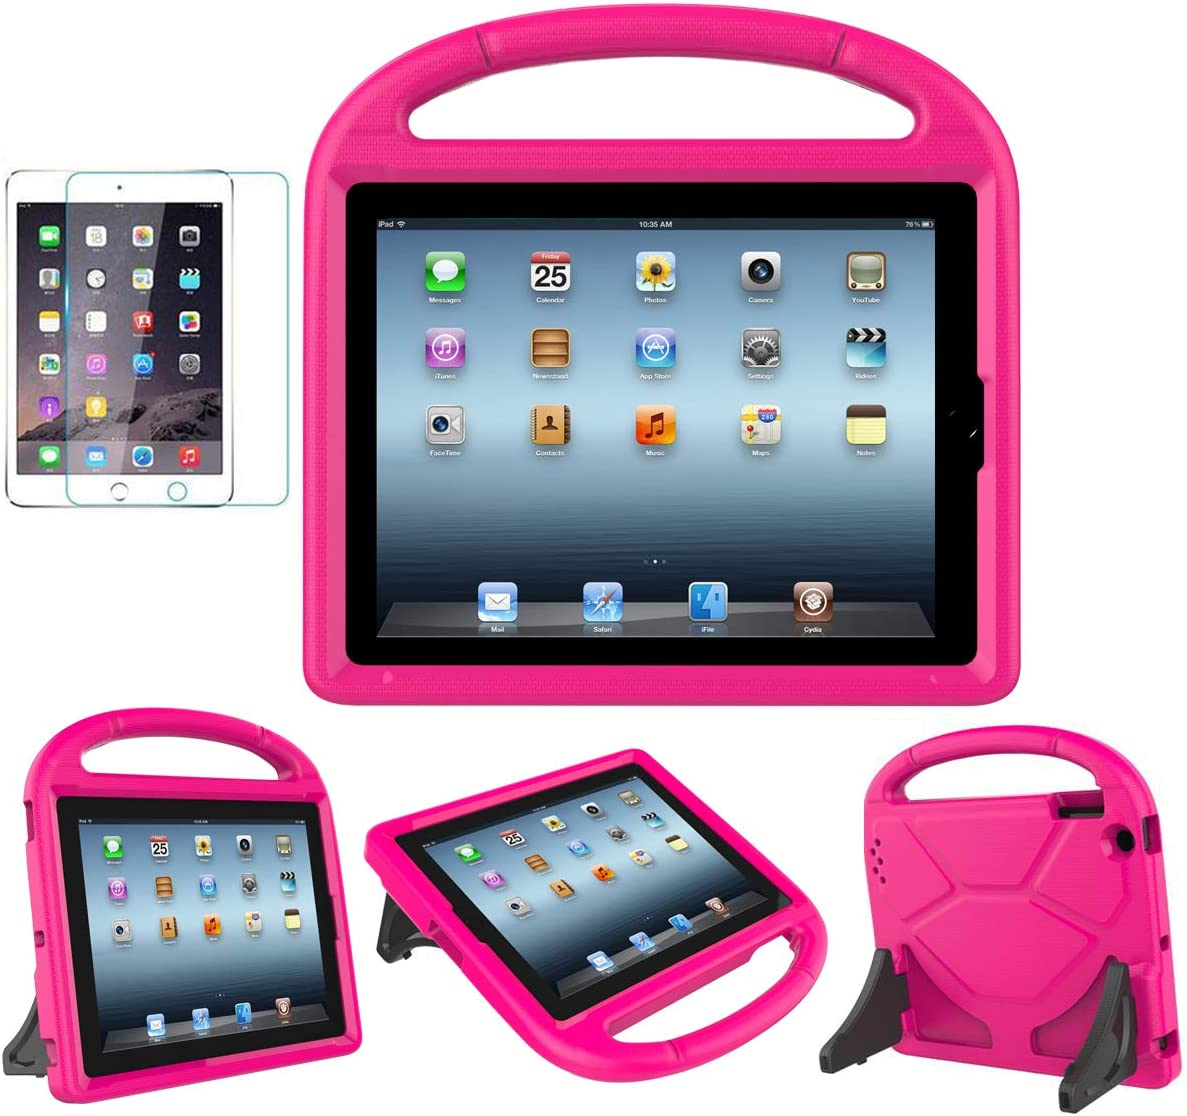 MOXOTEK Kids Case for iPad 2/3/4 (9.7 inch,2011/2012), Durable Lightweight Shockproof Protective Handle Stand Cover with Screen Protector for iPad 2nd/3rd/4th Generation(NOT for 5th/6h Gen), Pink